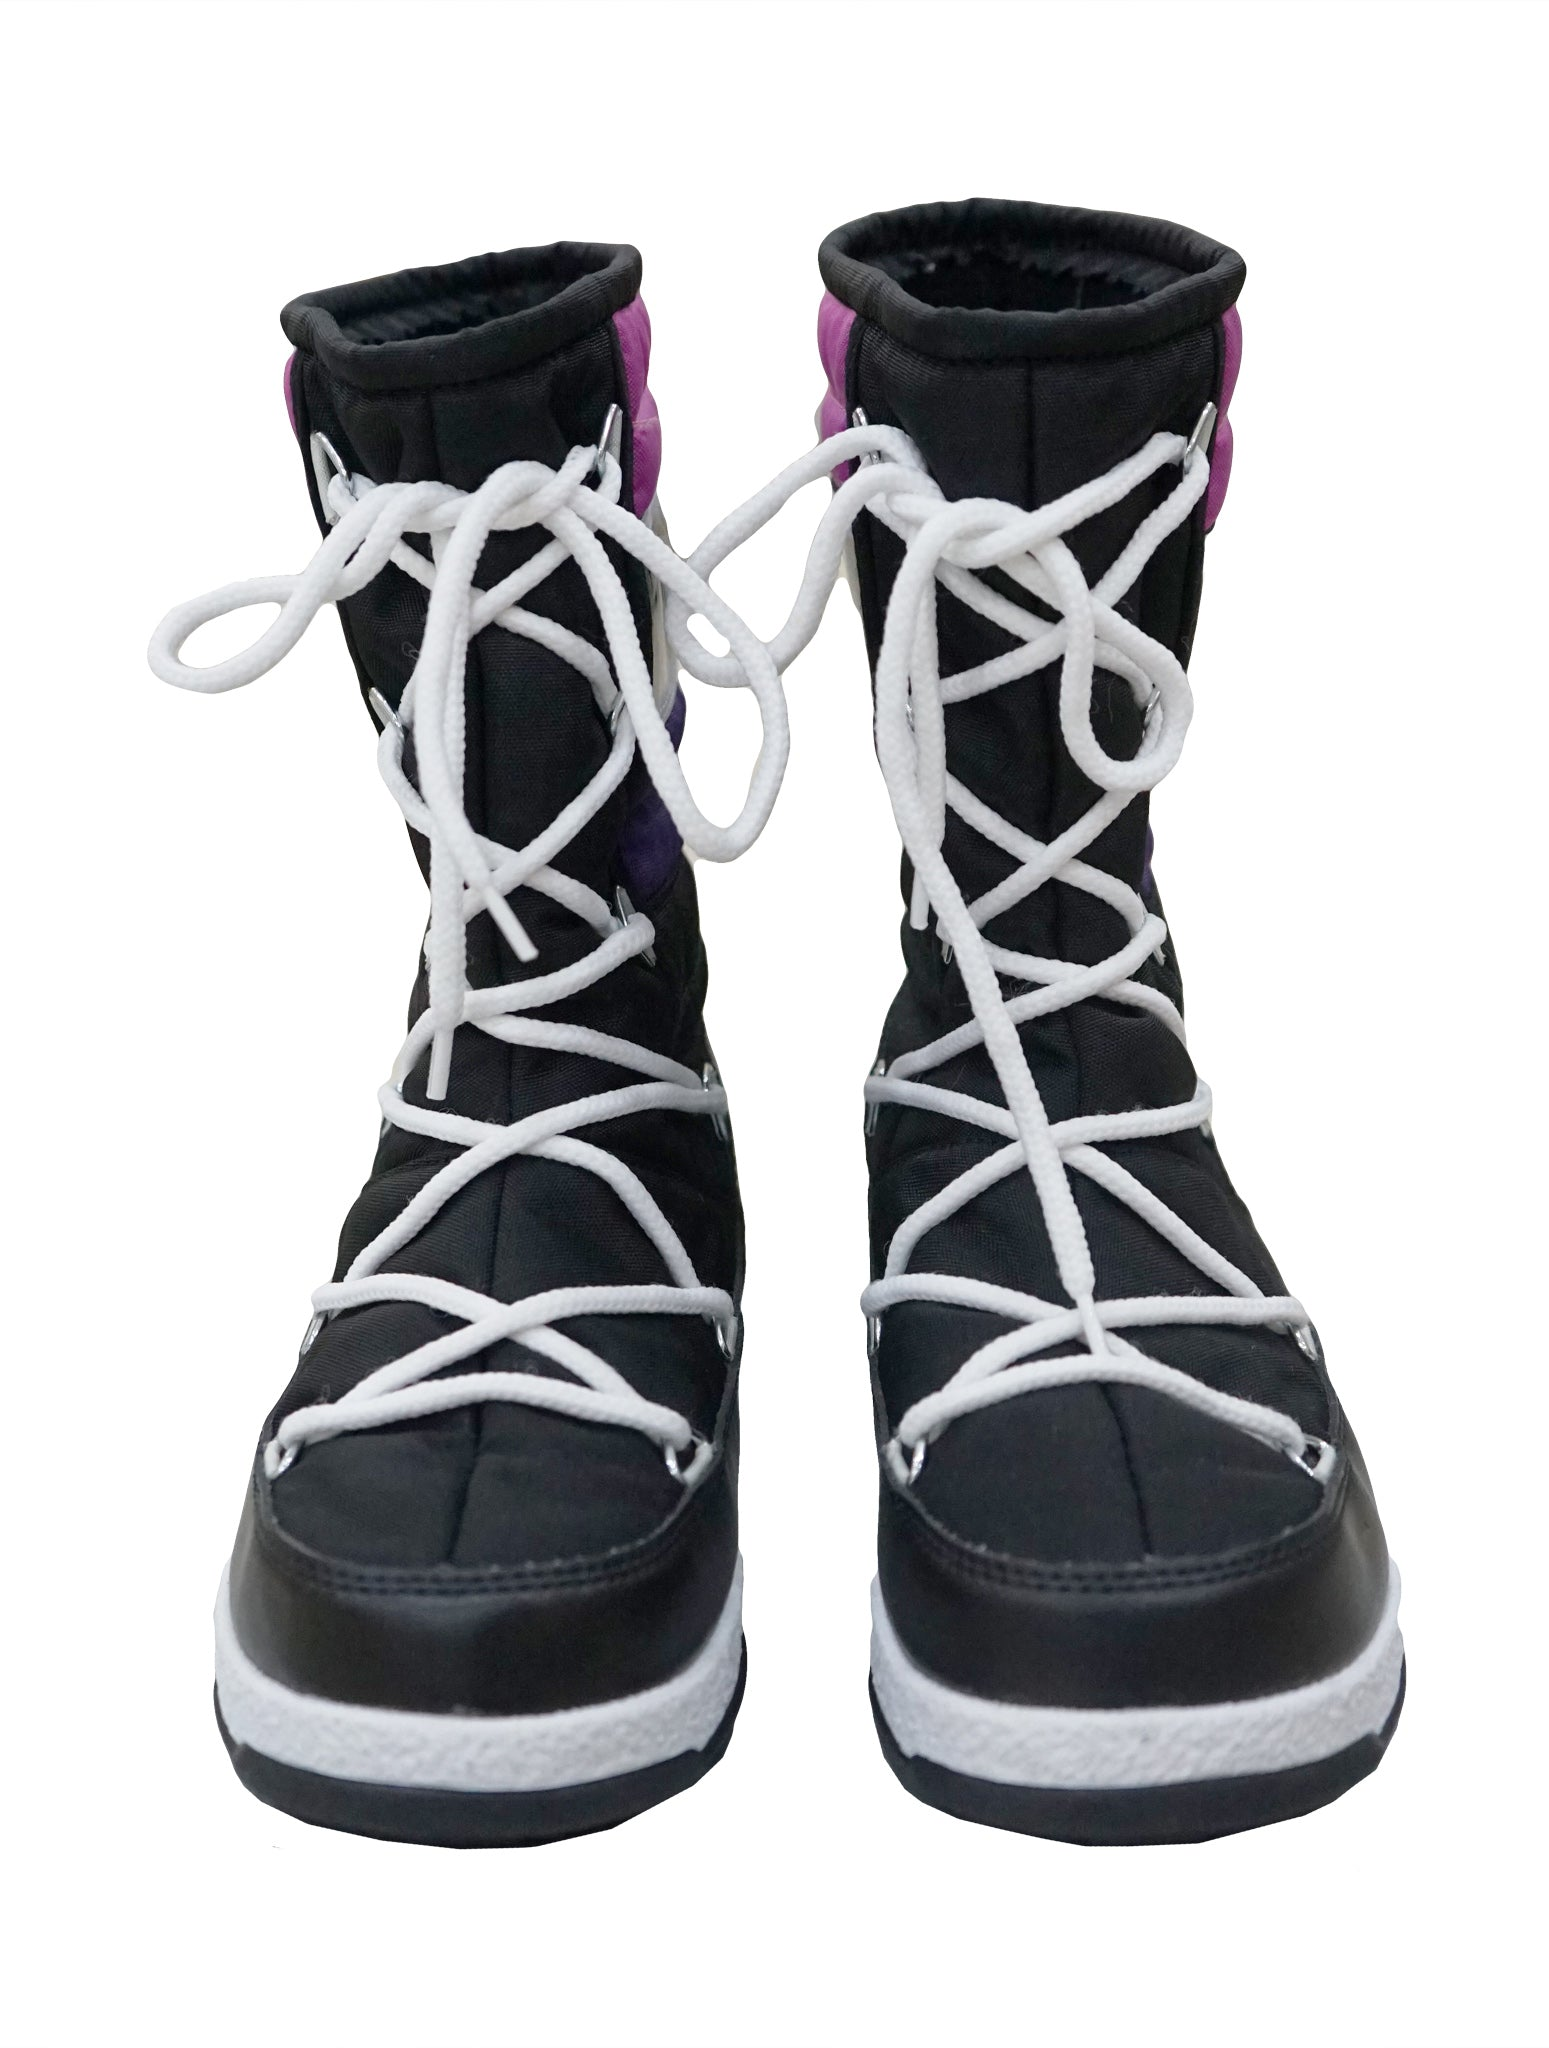 FELT-LINED SNOW BOOTS